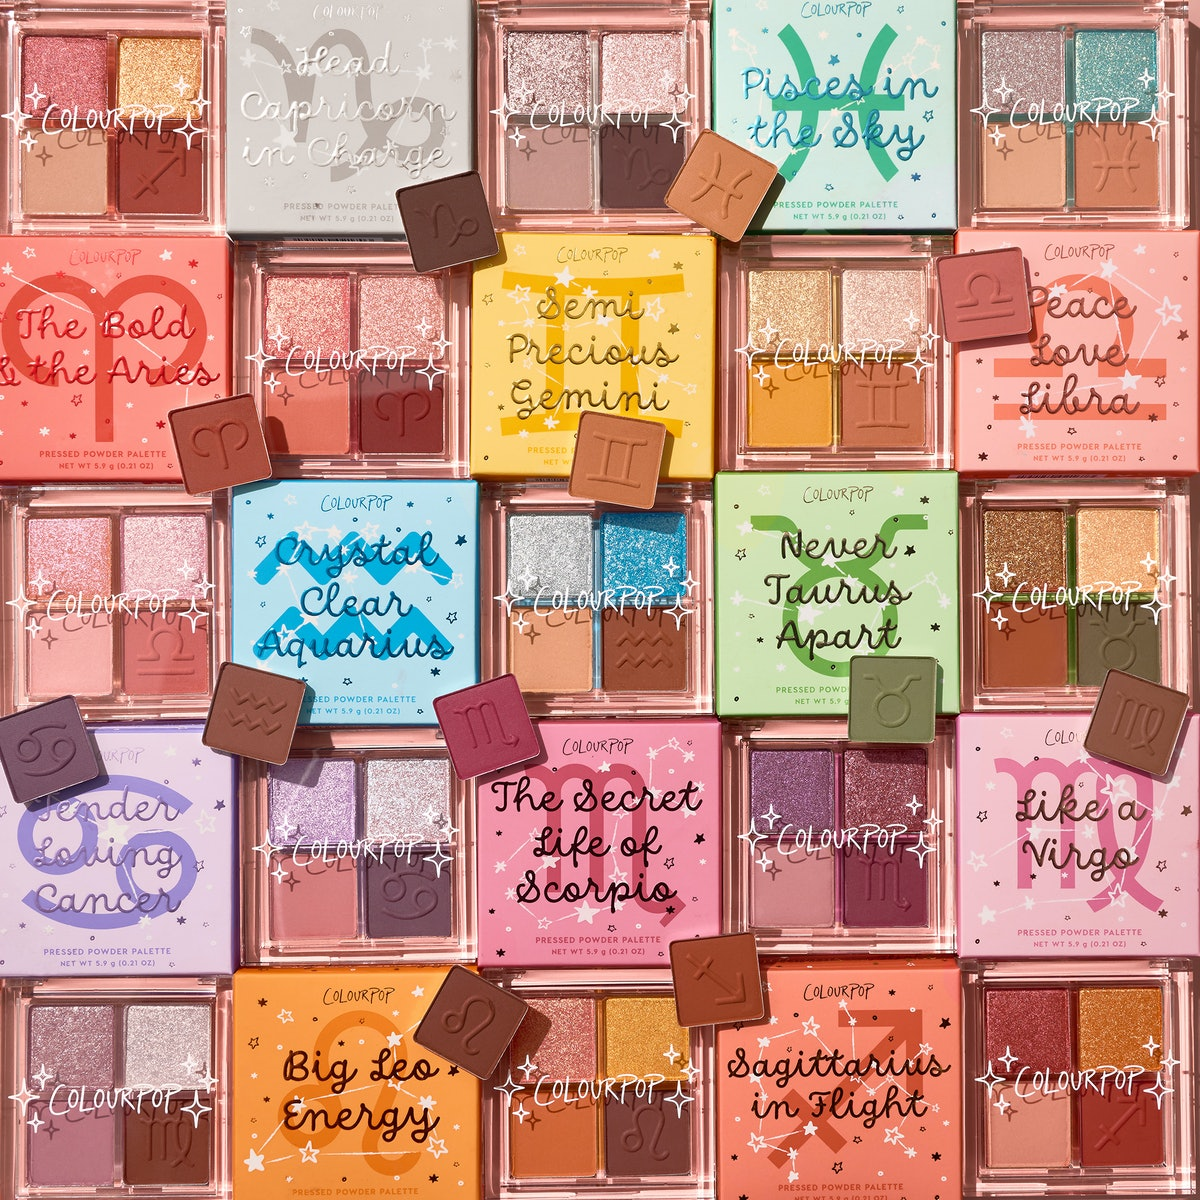 All of the eyeshadow palettes featured in ColourPop's Astrology Collection.